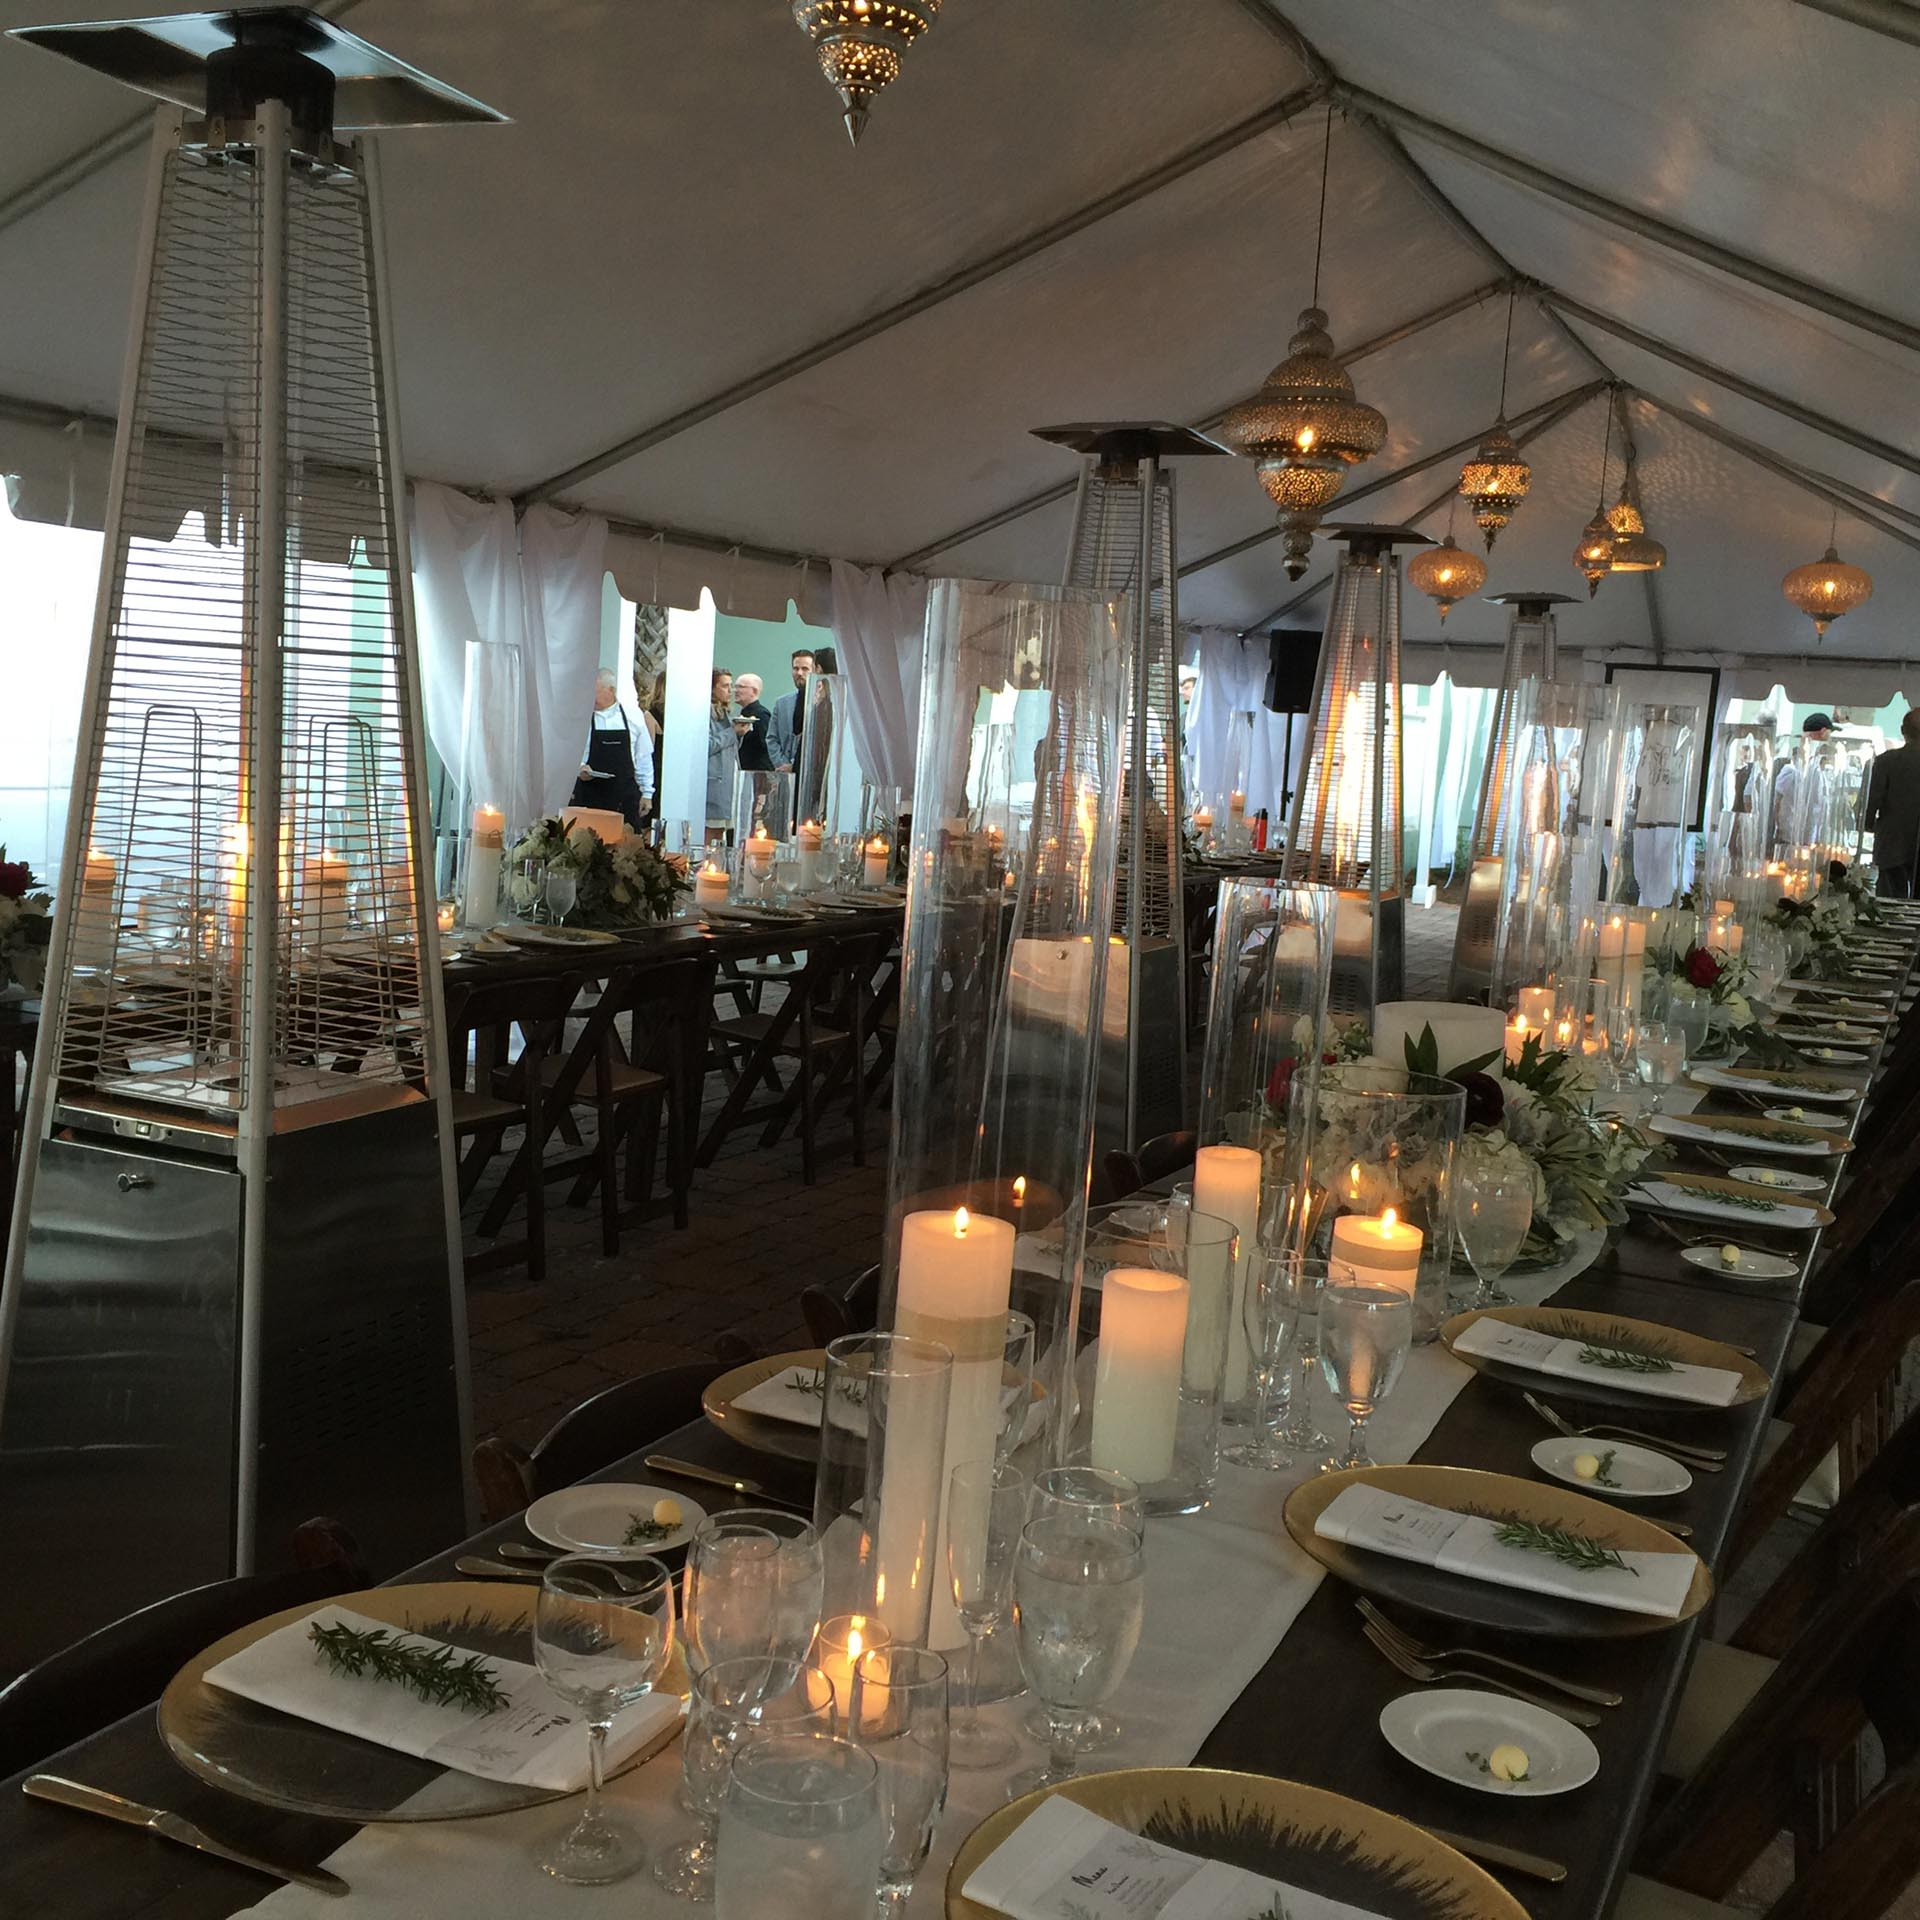 Dining area with heaters for wedding guests